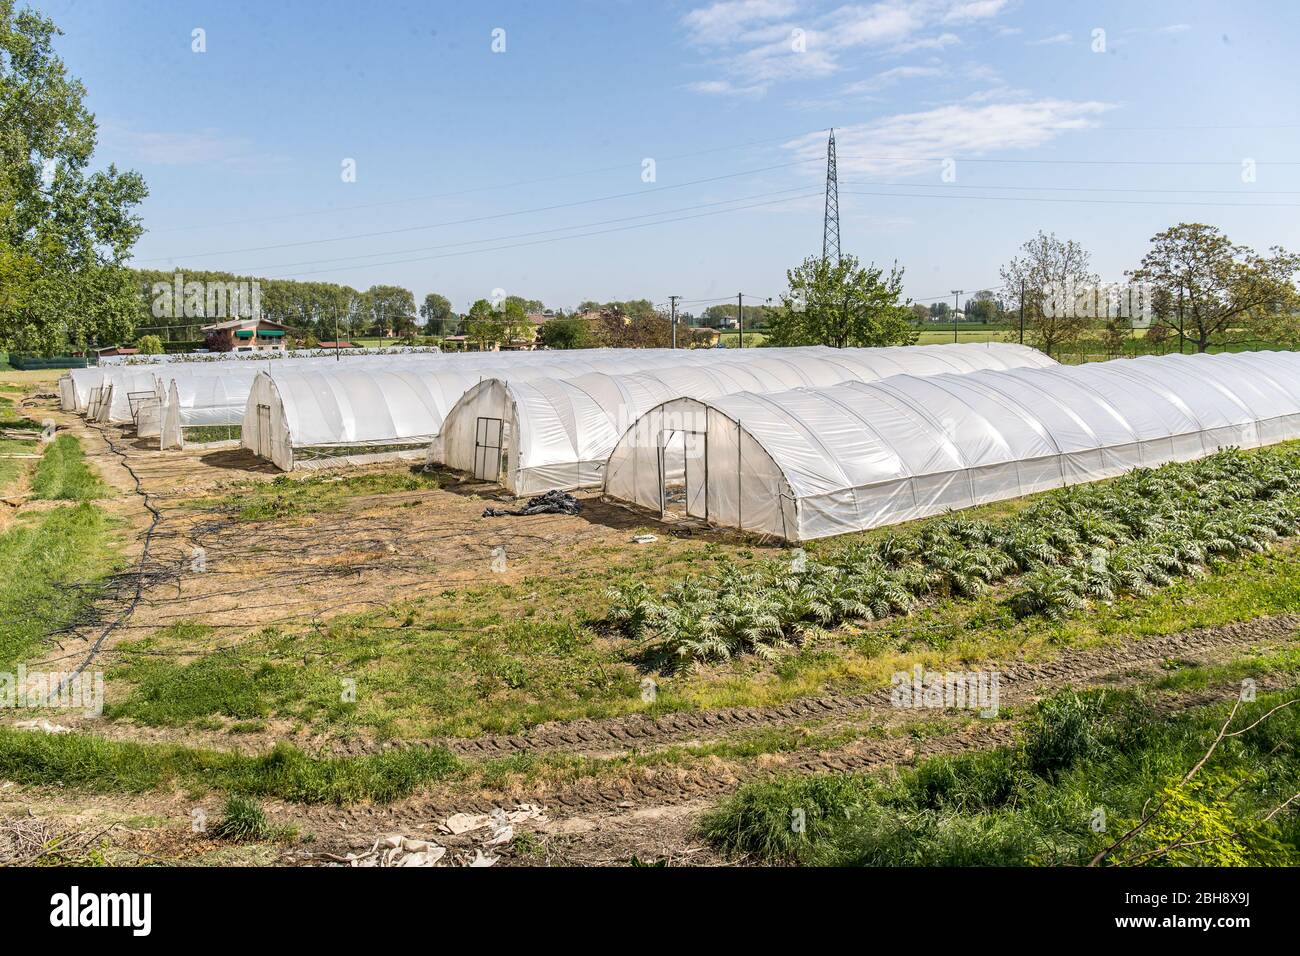 """Ferrara, Italy. 22 April, 2020.  Greenhouses with fruits and vegetables in the """"Casa di Stefano"""" (House of Stefano) recovery community in Ferrara, Ita Stock Photo"""